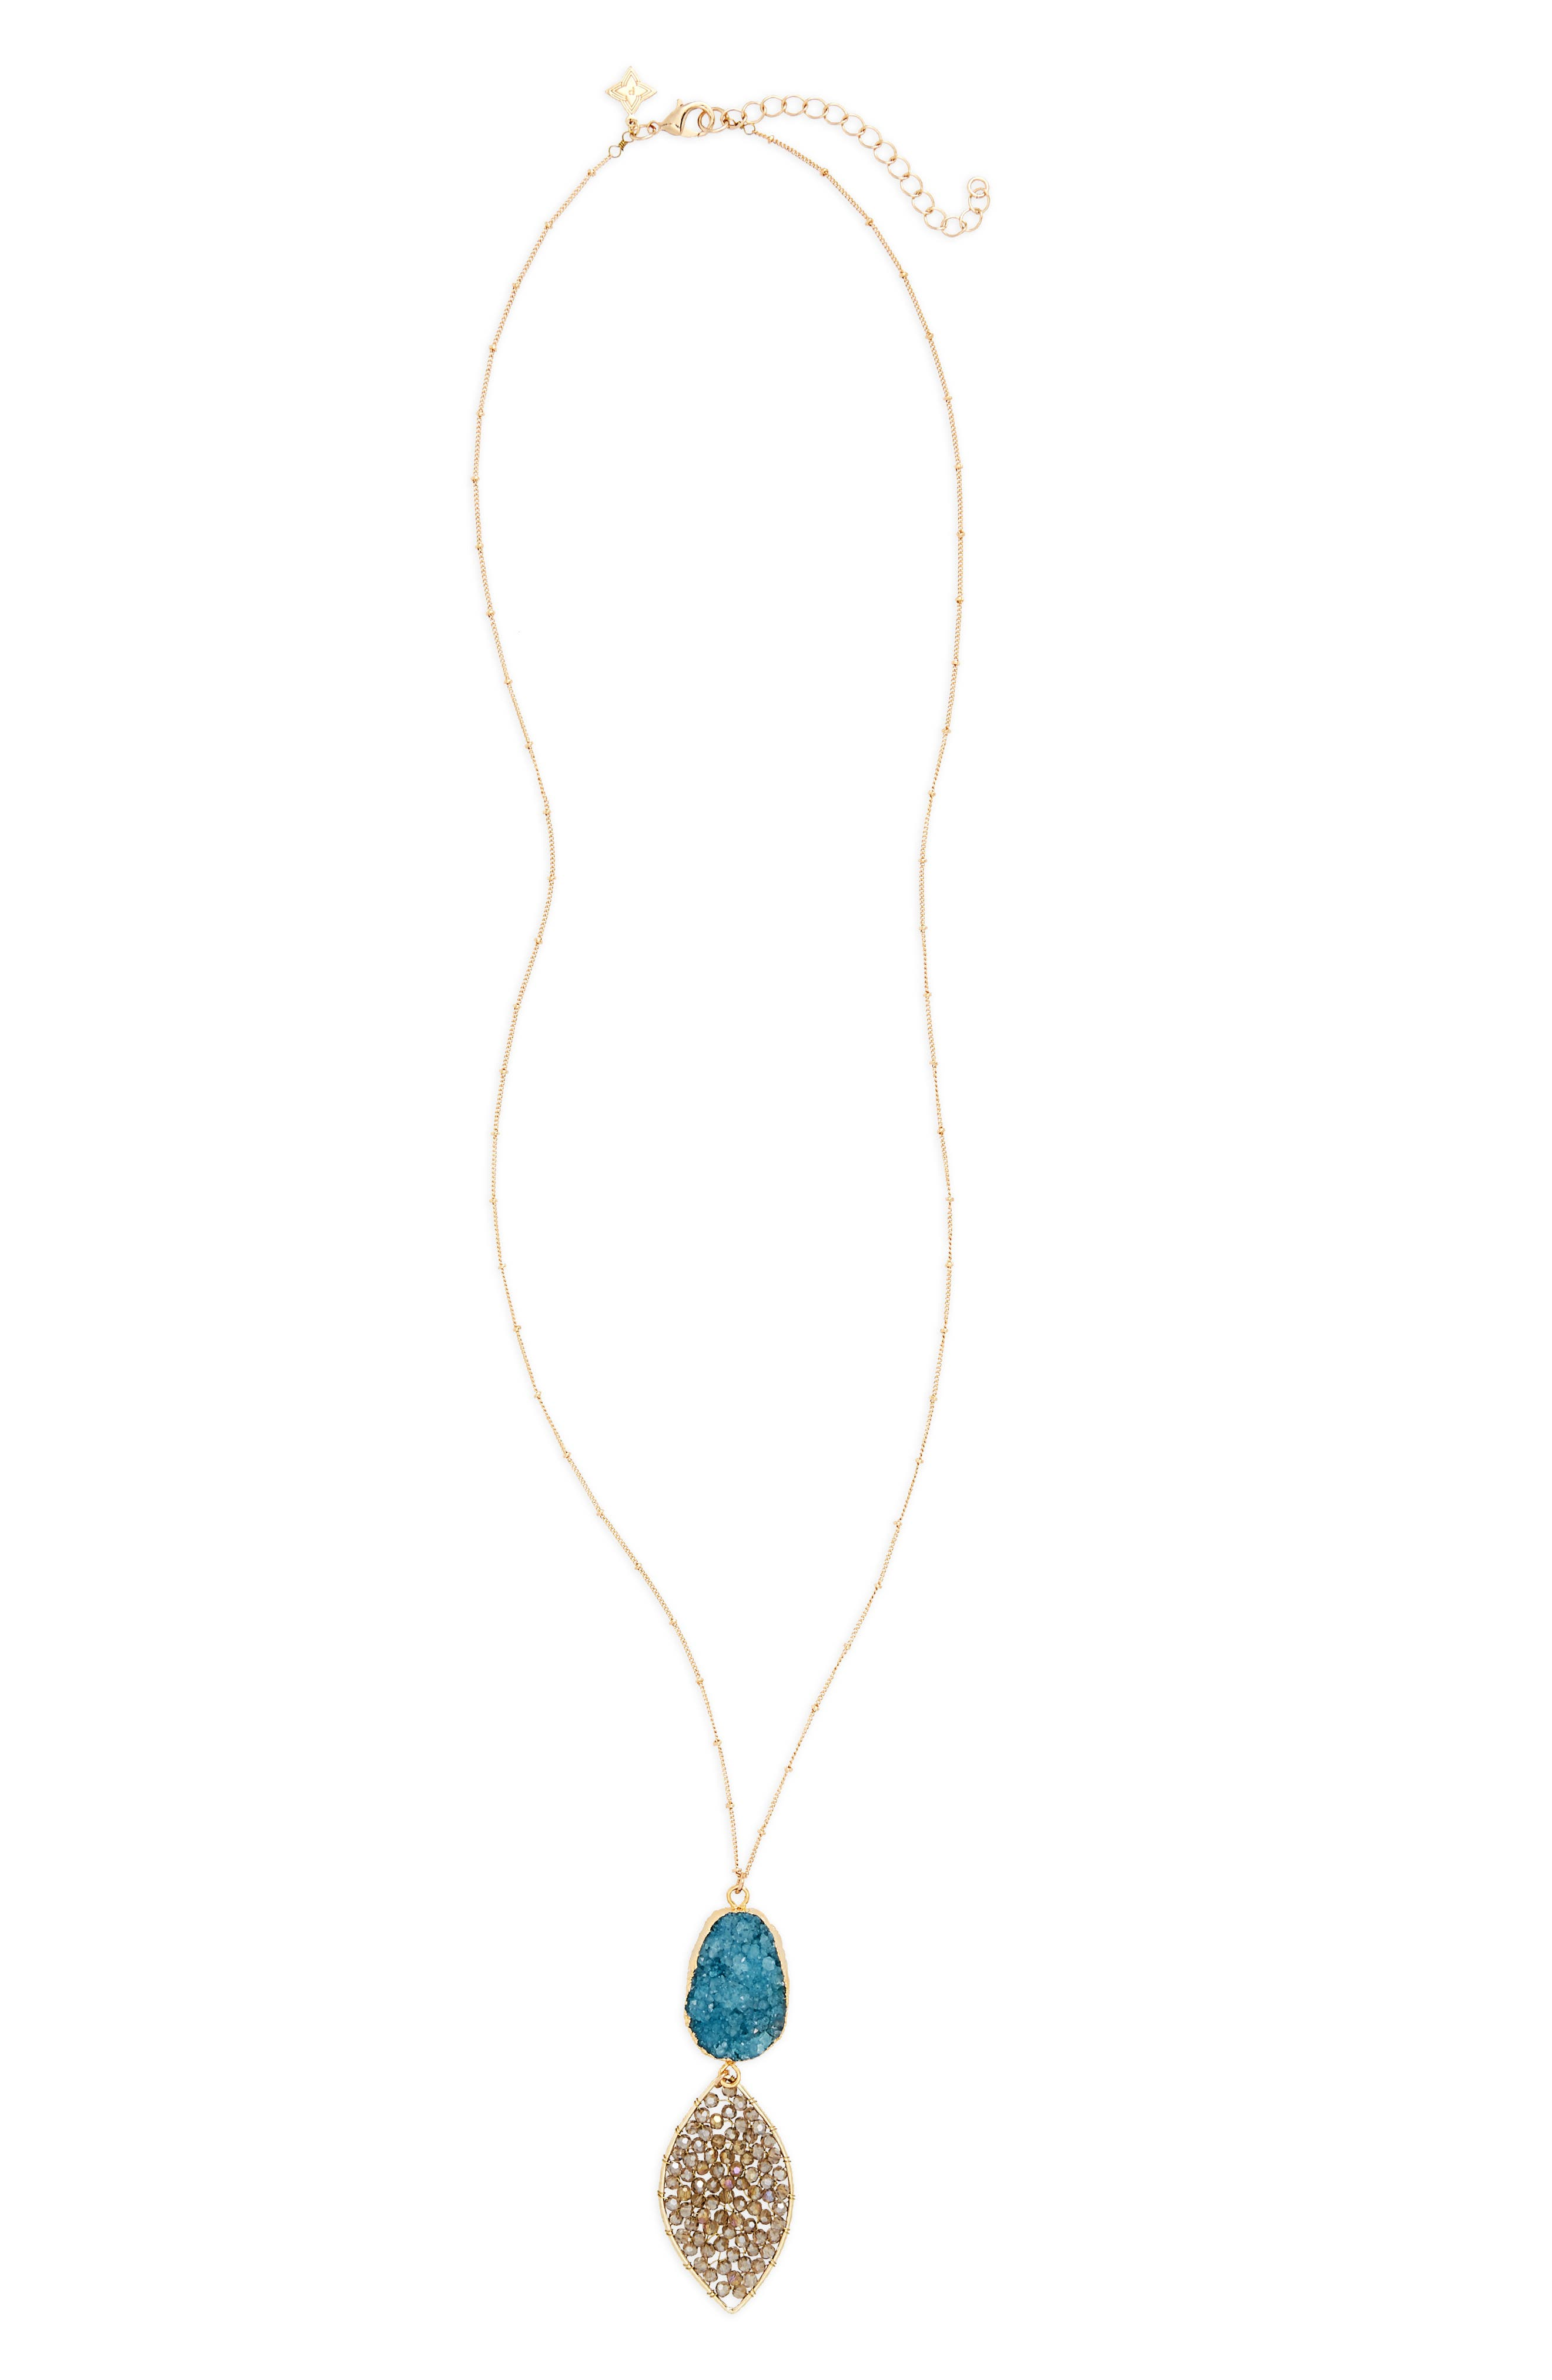 Panacea Stone & Beaded Crystal Pendant Necklace